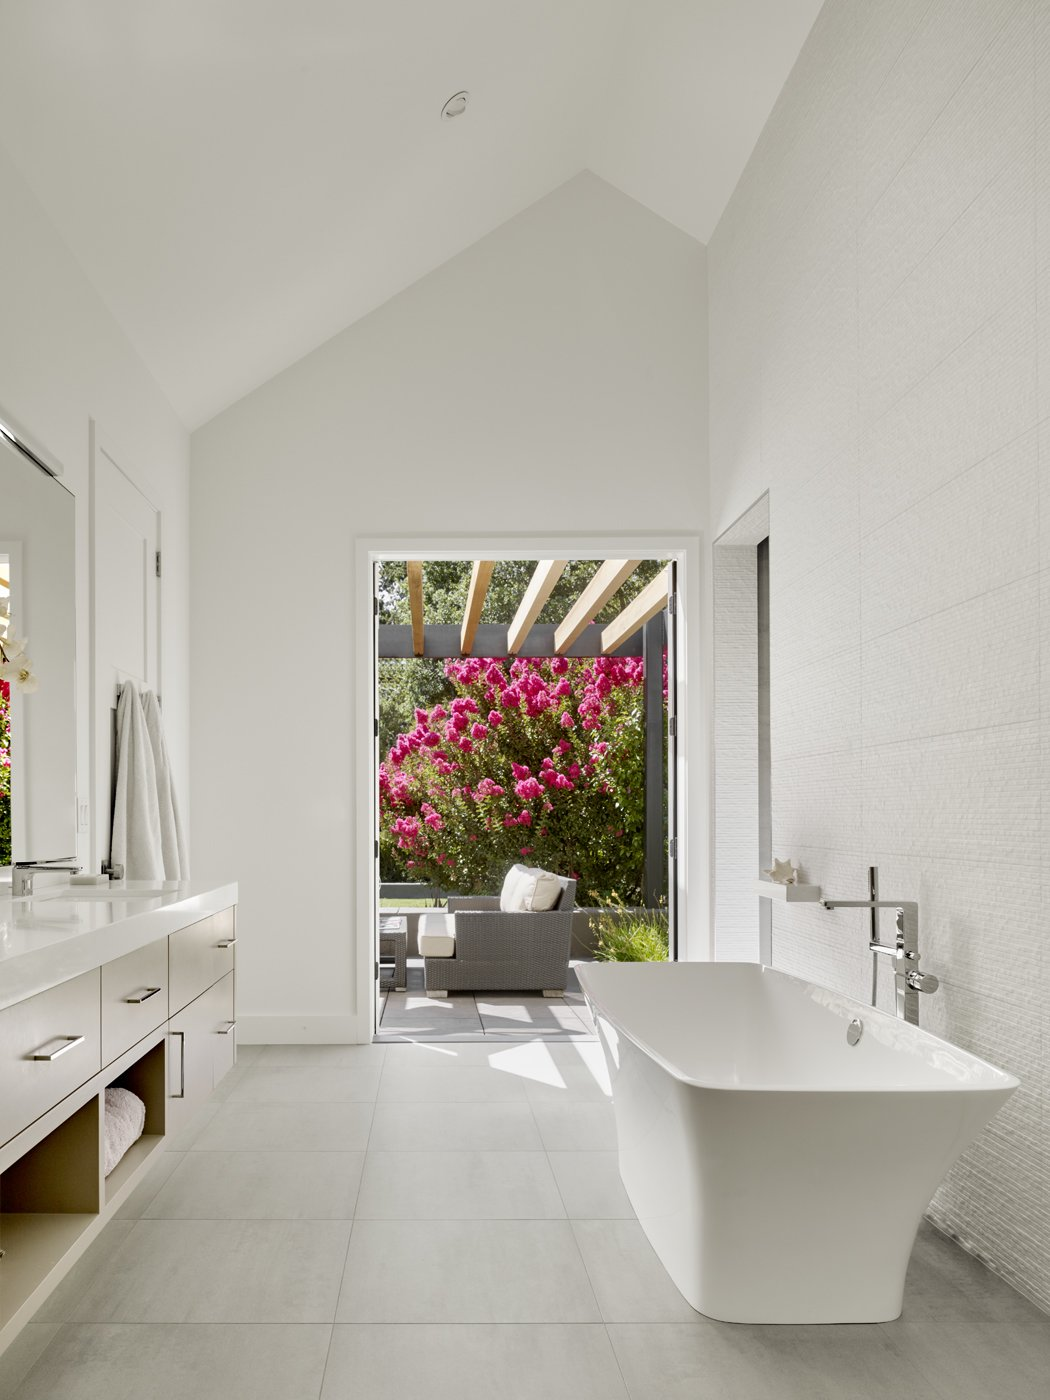 Bath Room and Freestanding Tub Master Bath.  Sunday chill.  Wine Country Cool